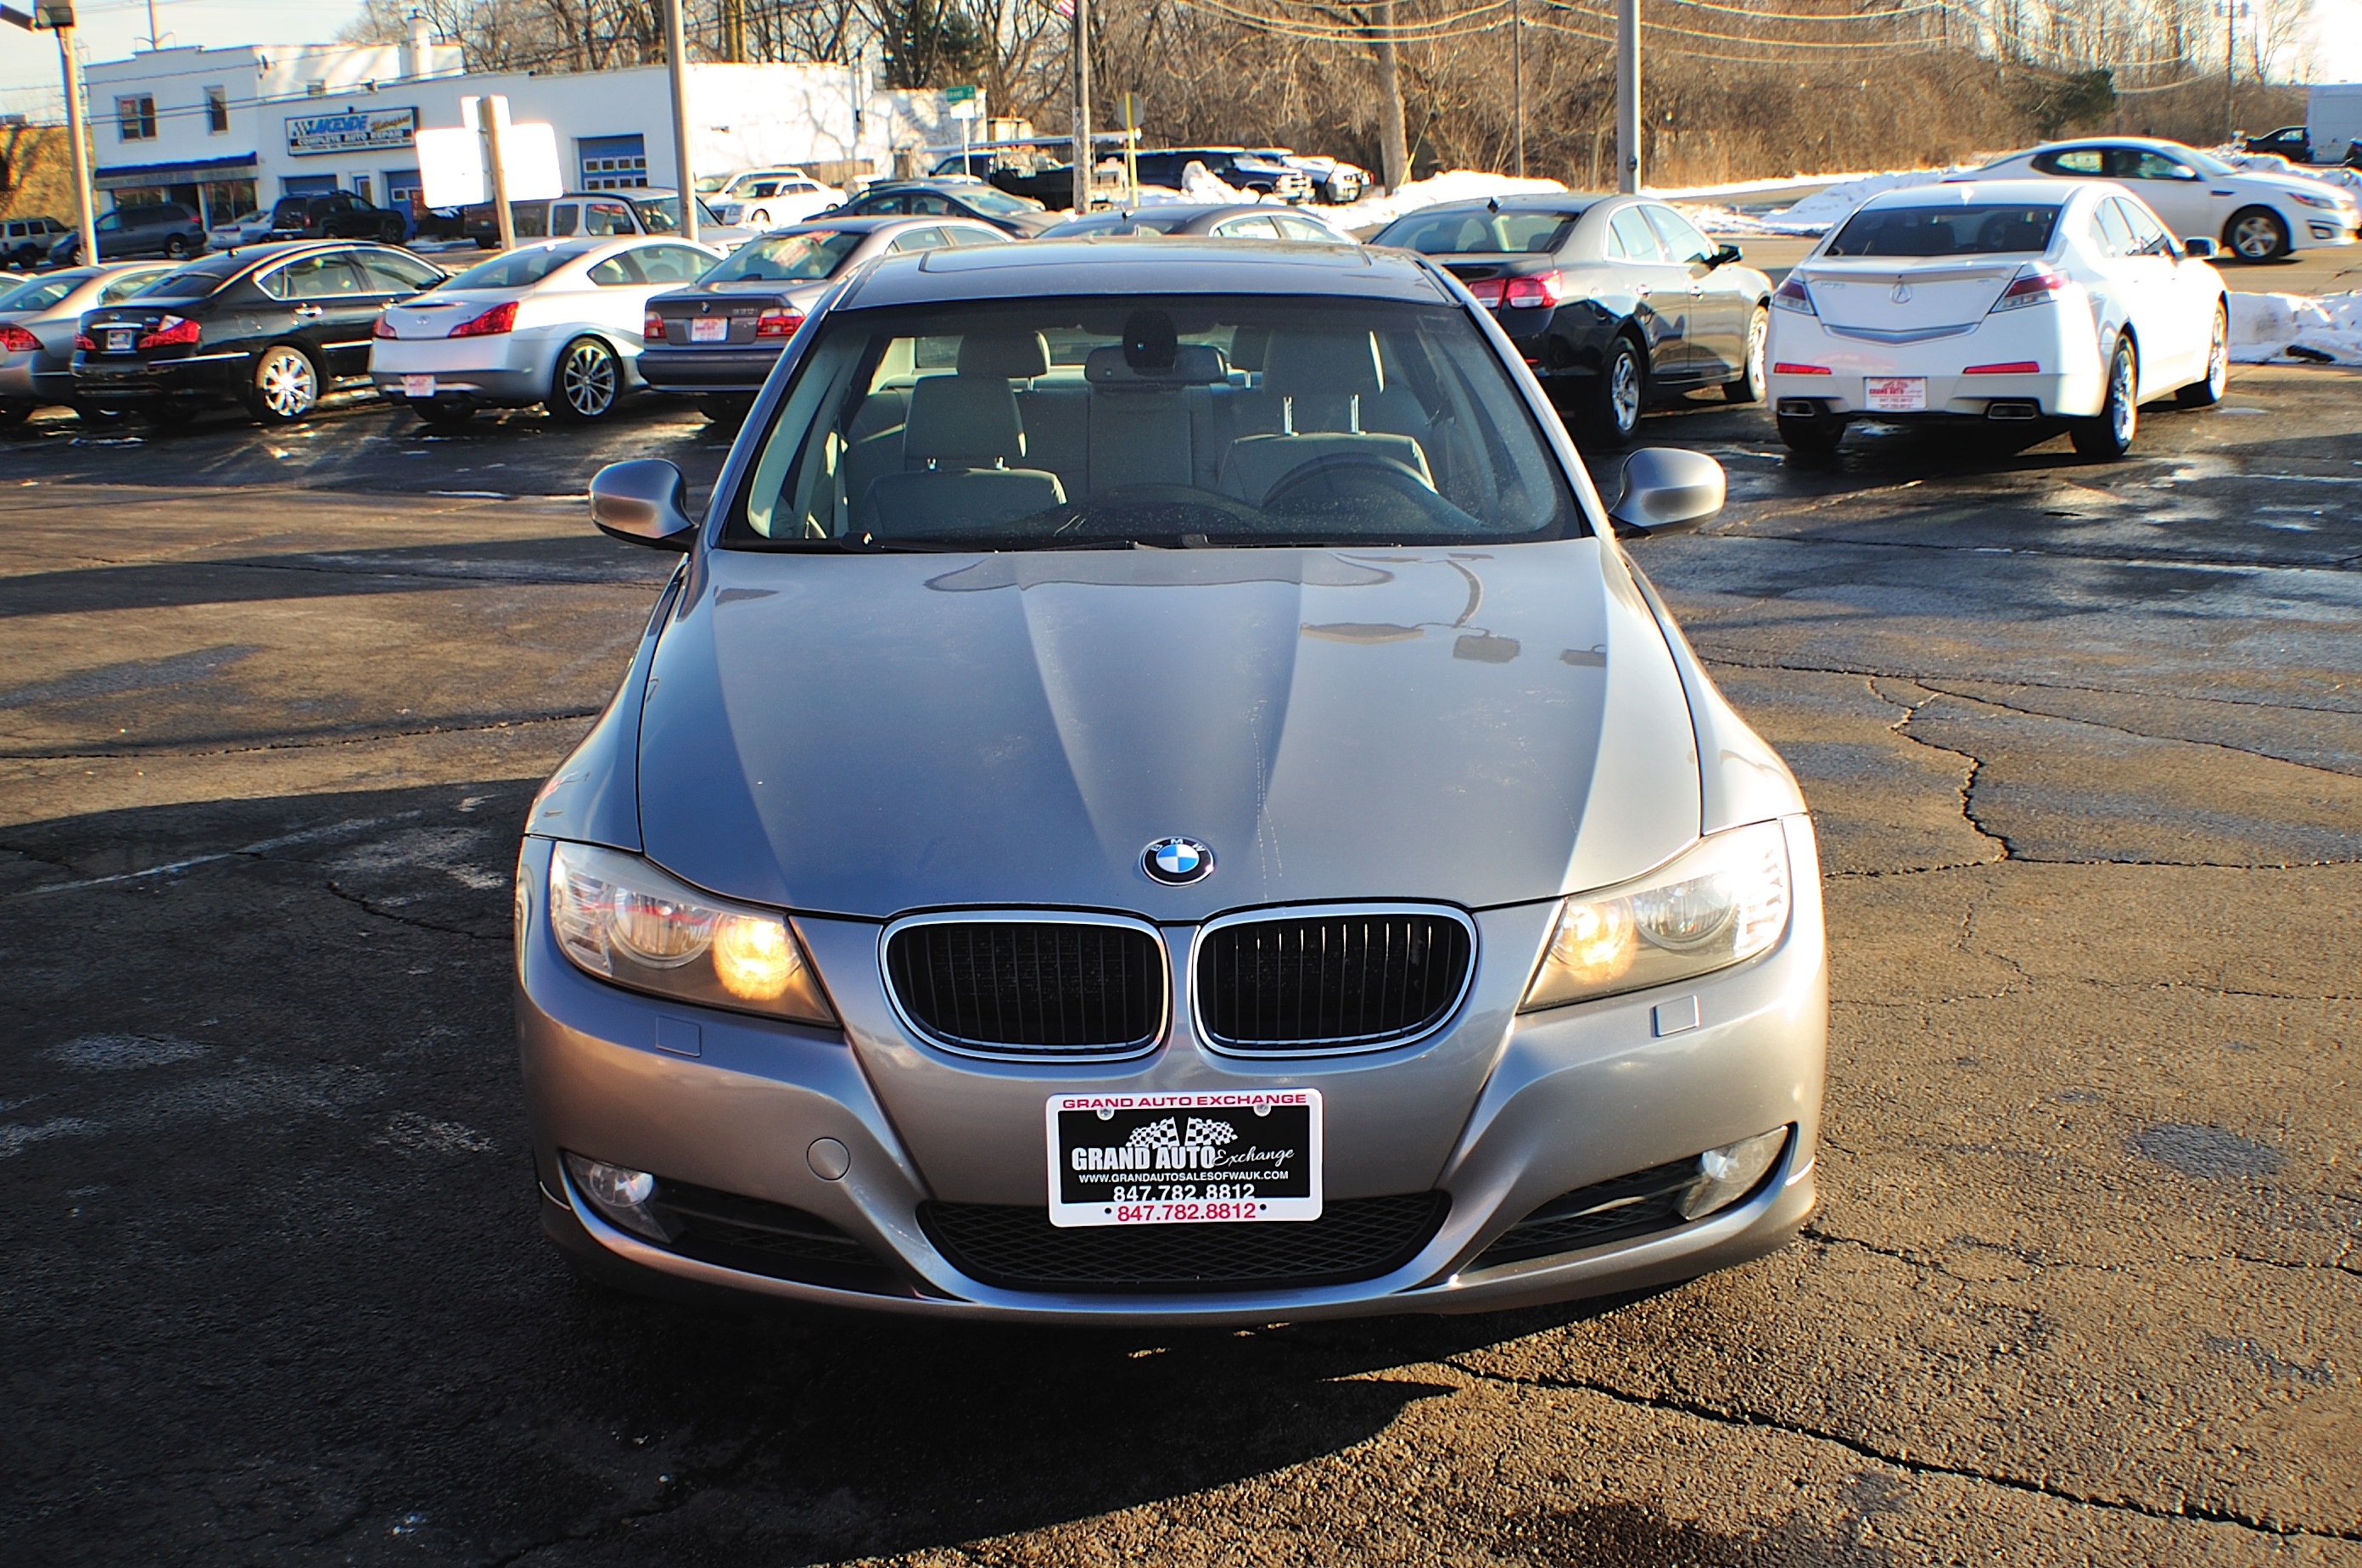 2009 BMW 328i Blue Used Sport Sedan Sale Gurnee Kenosha Mchenry